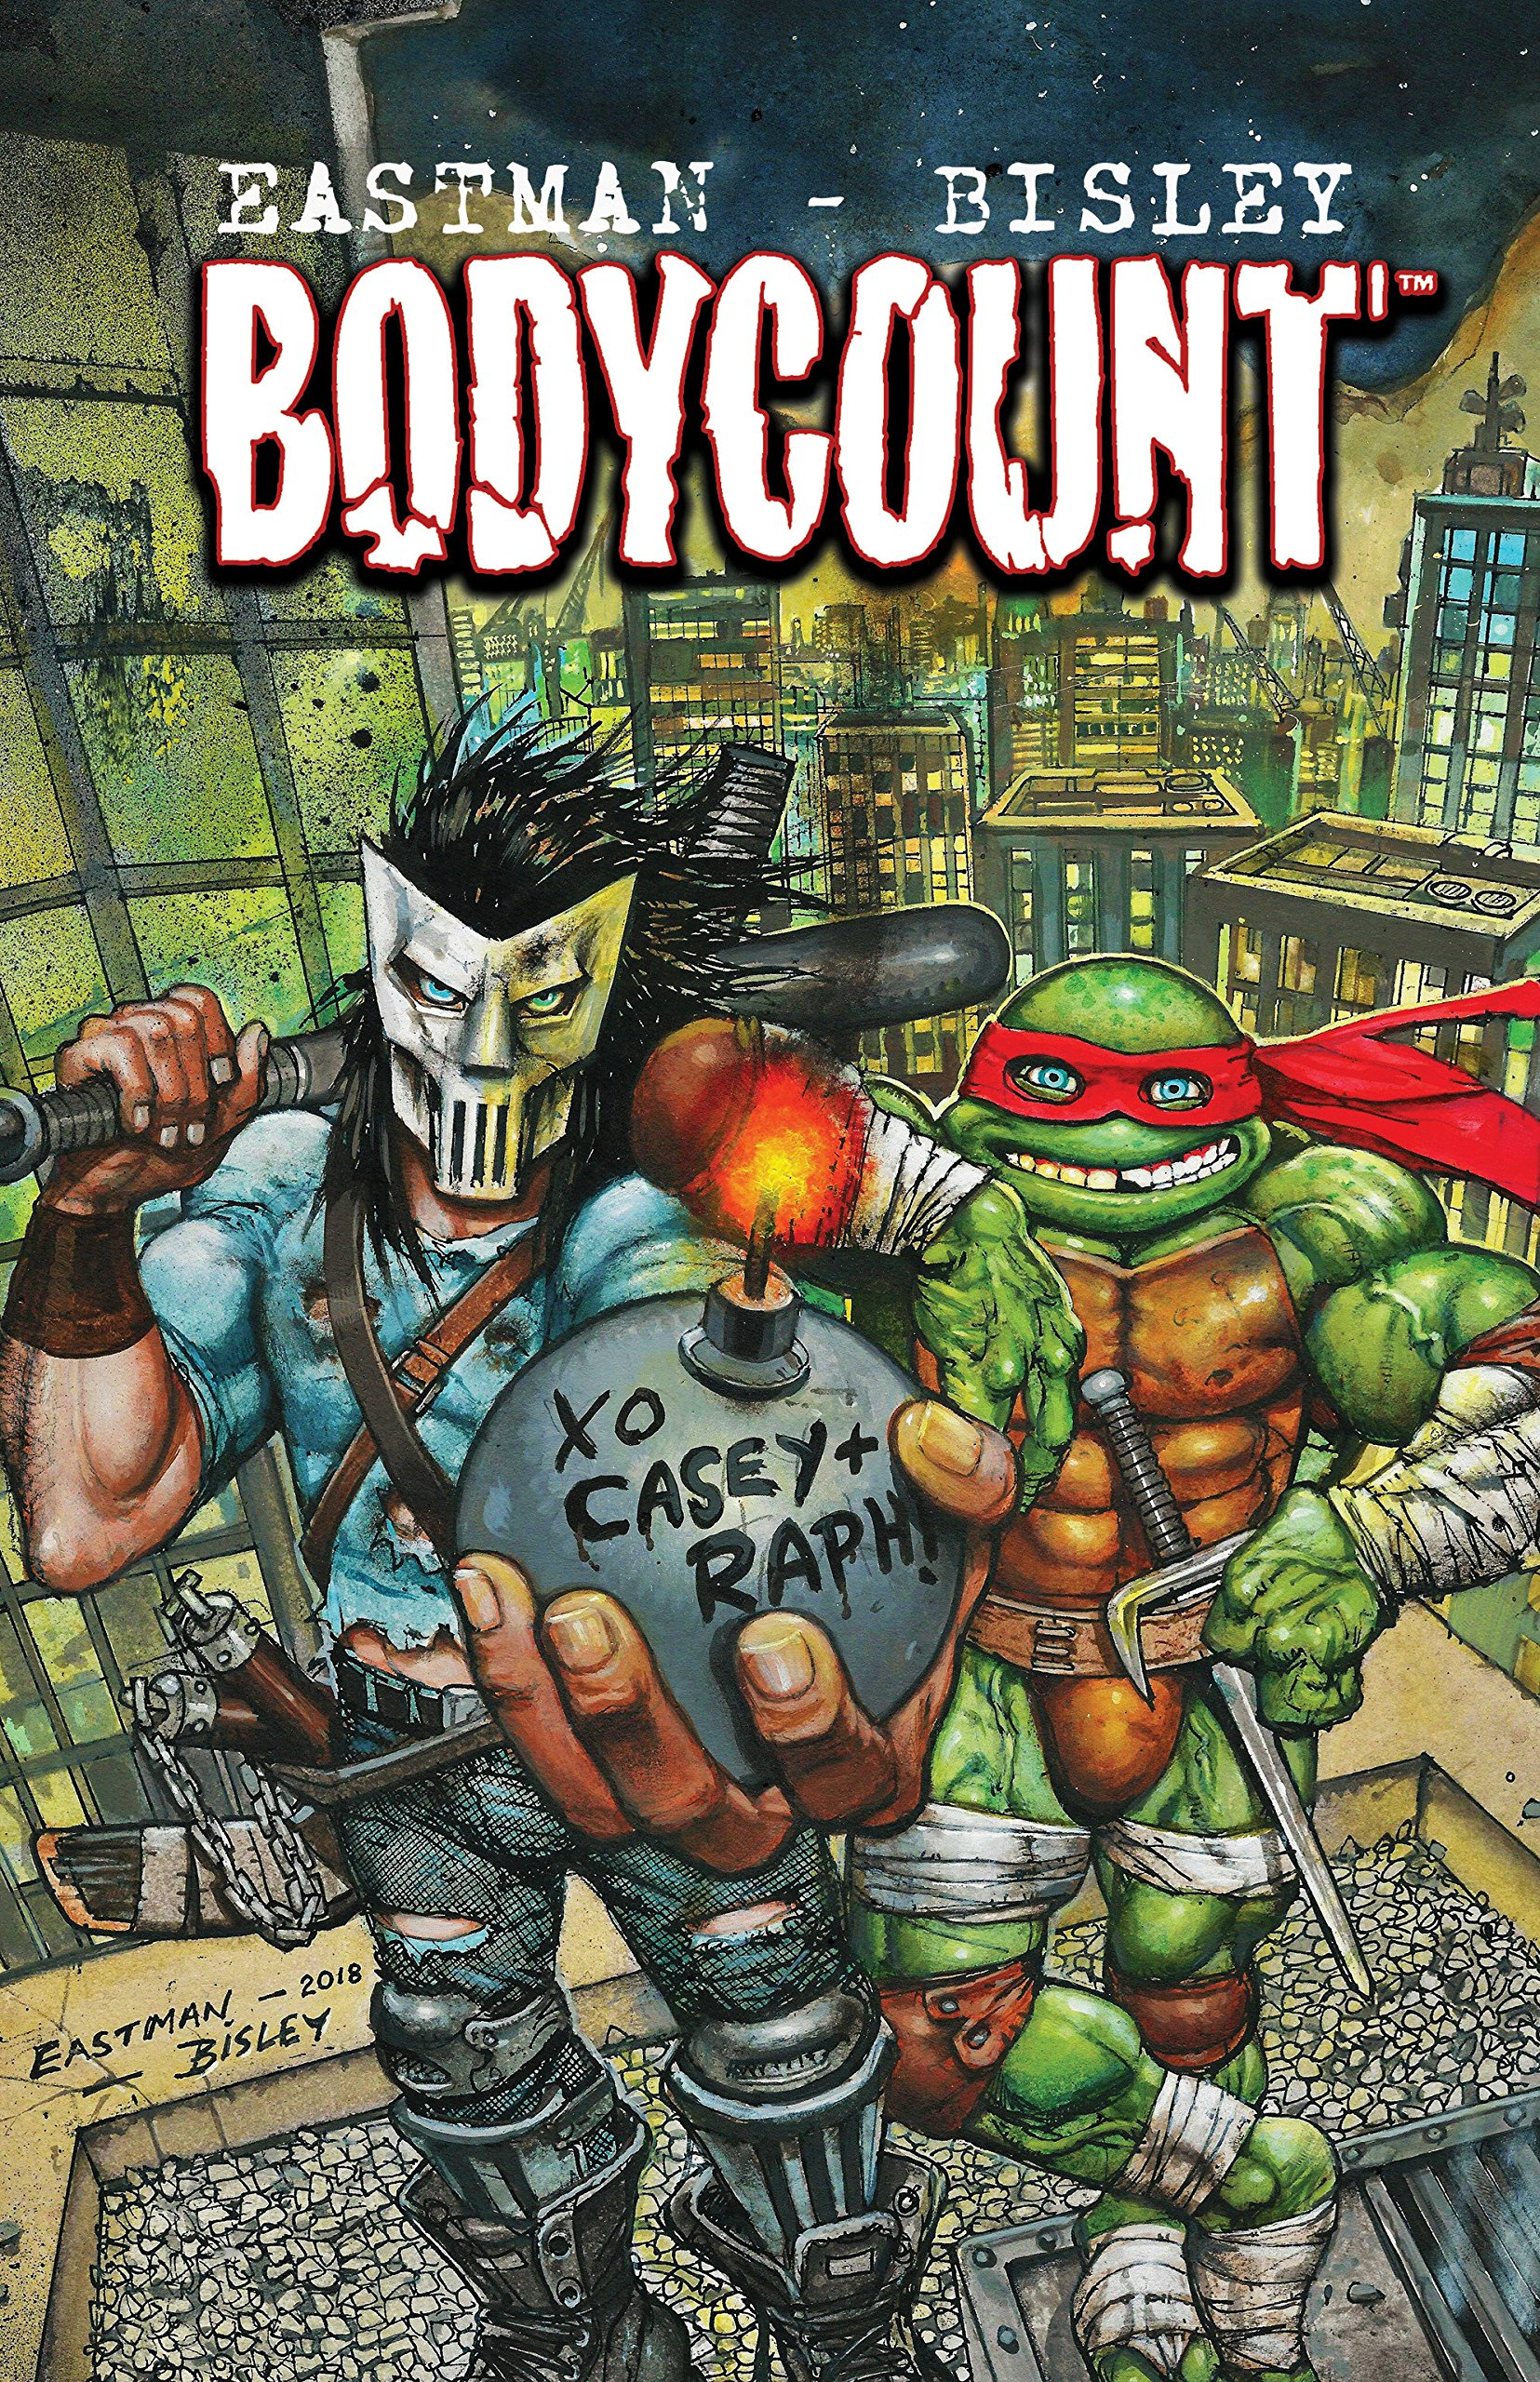 Amazon.com: Teenage Mutant Ninja Turtles: Bodycount ...